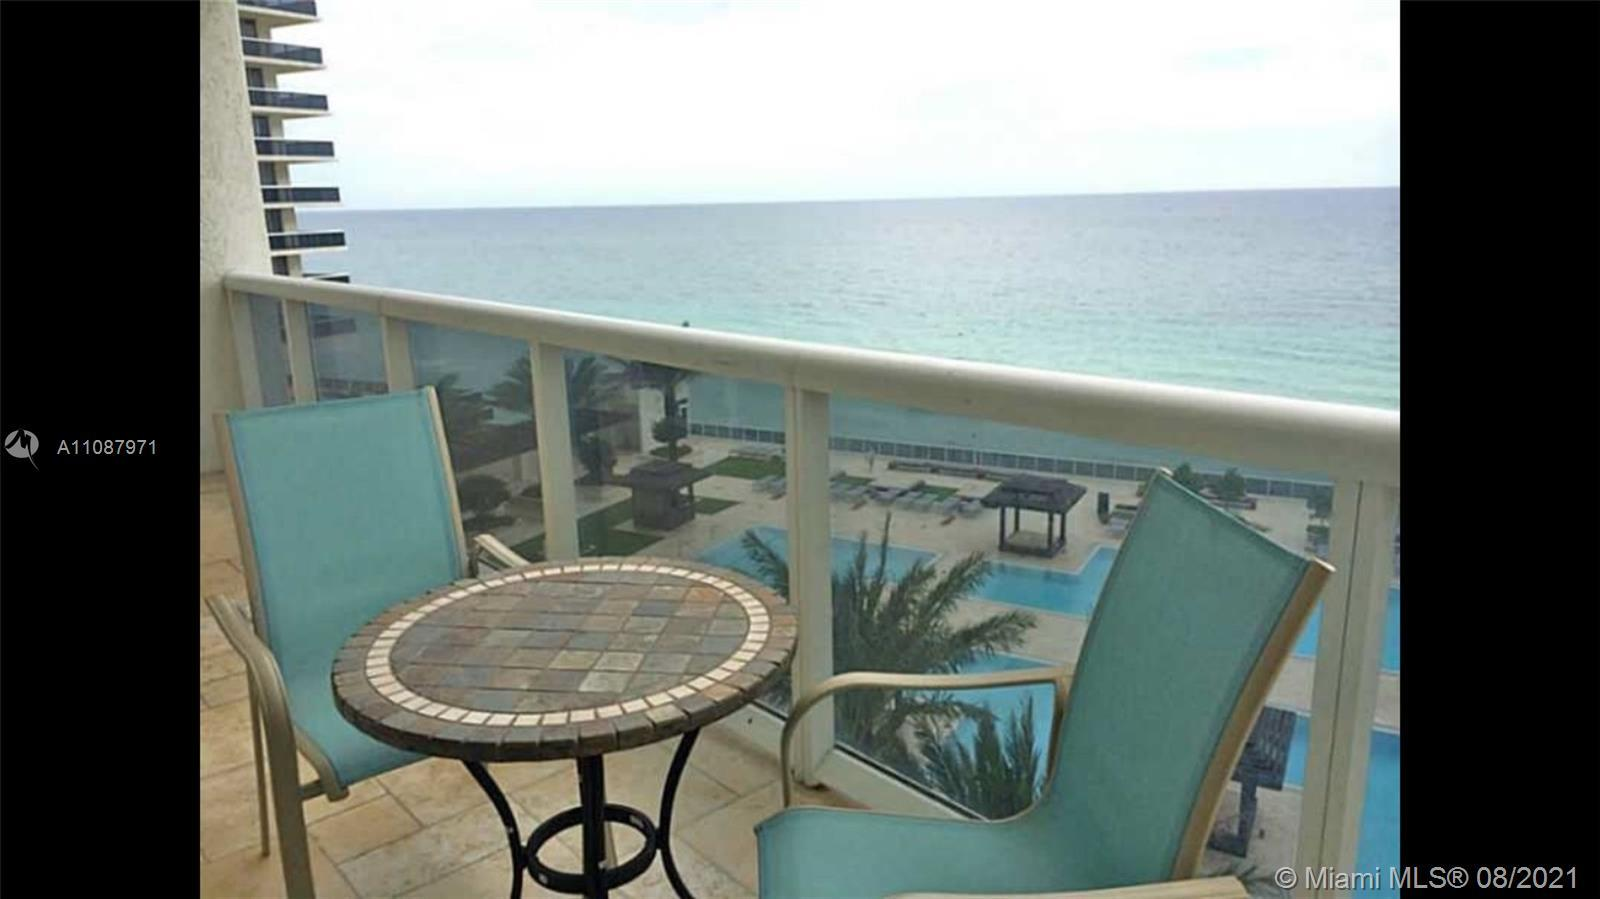 ONE OF A KIND DIRECT OCEANFRONT UNIT!!! WHAT AN AMAZING OPPORTUNITY TO OWN A PIECE OF PARADISE IN TH